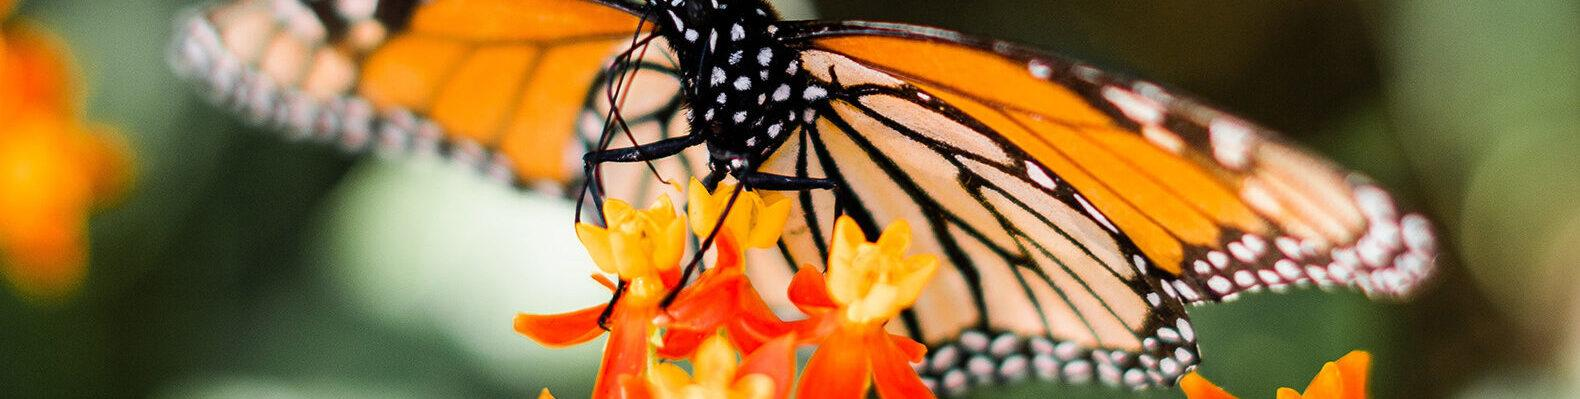 closeup of a monarch butterfly resting on an orange flowered plant